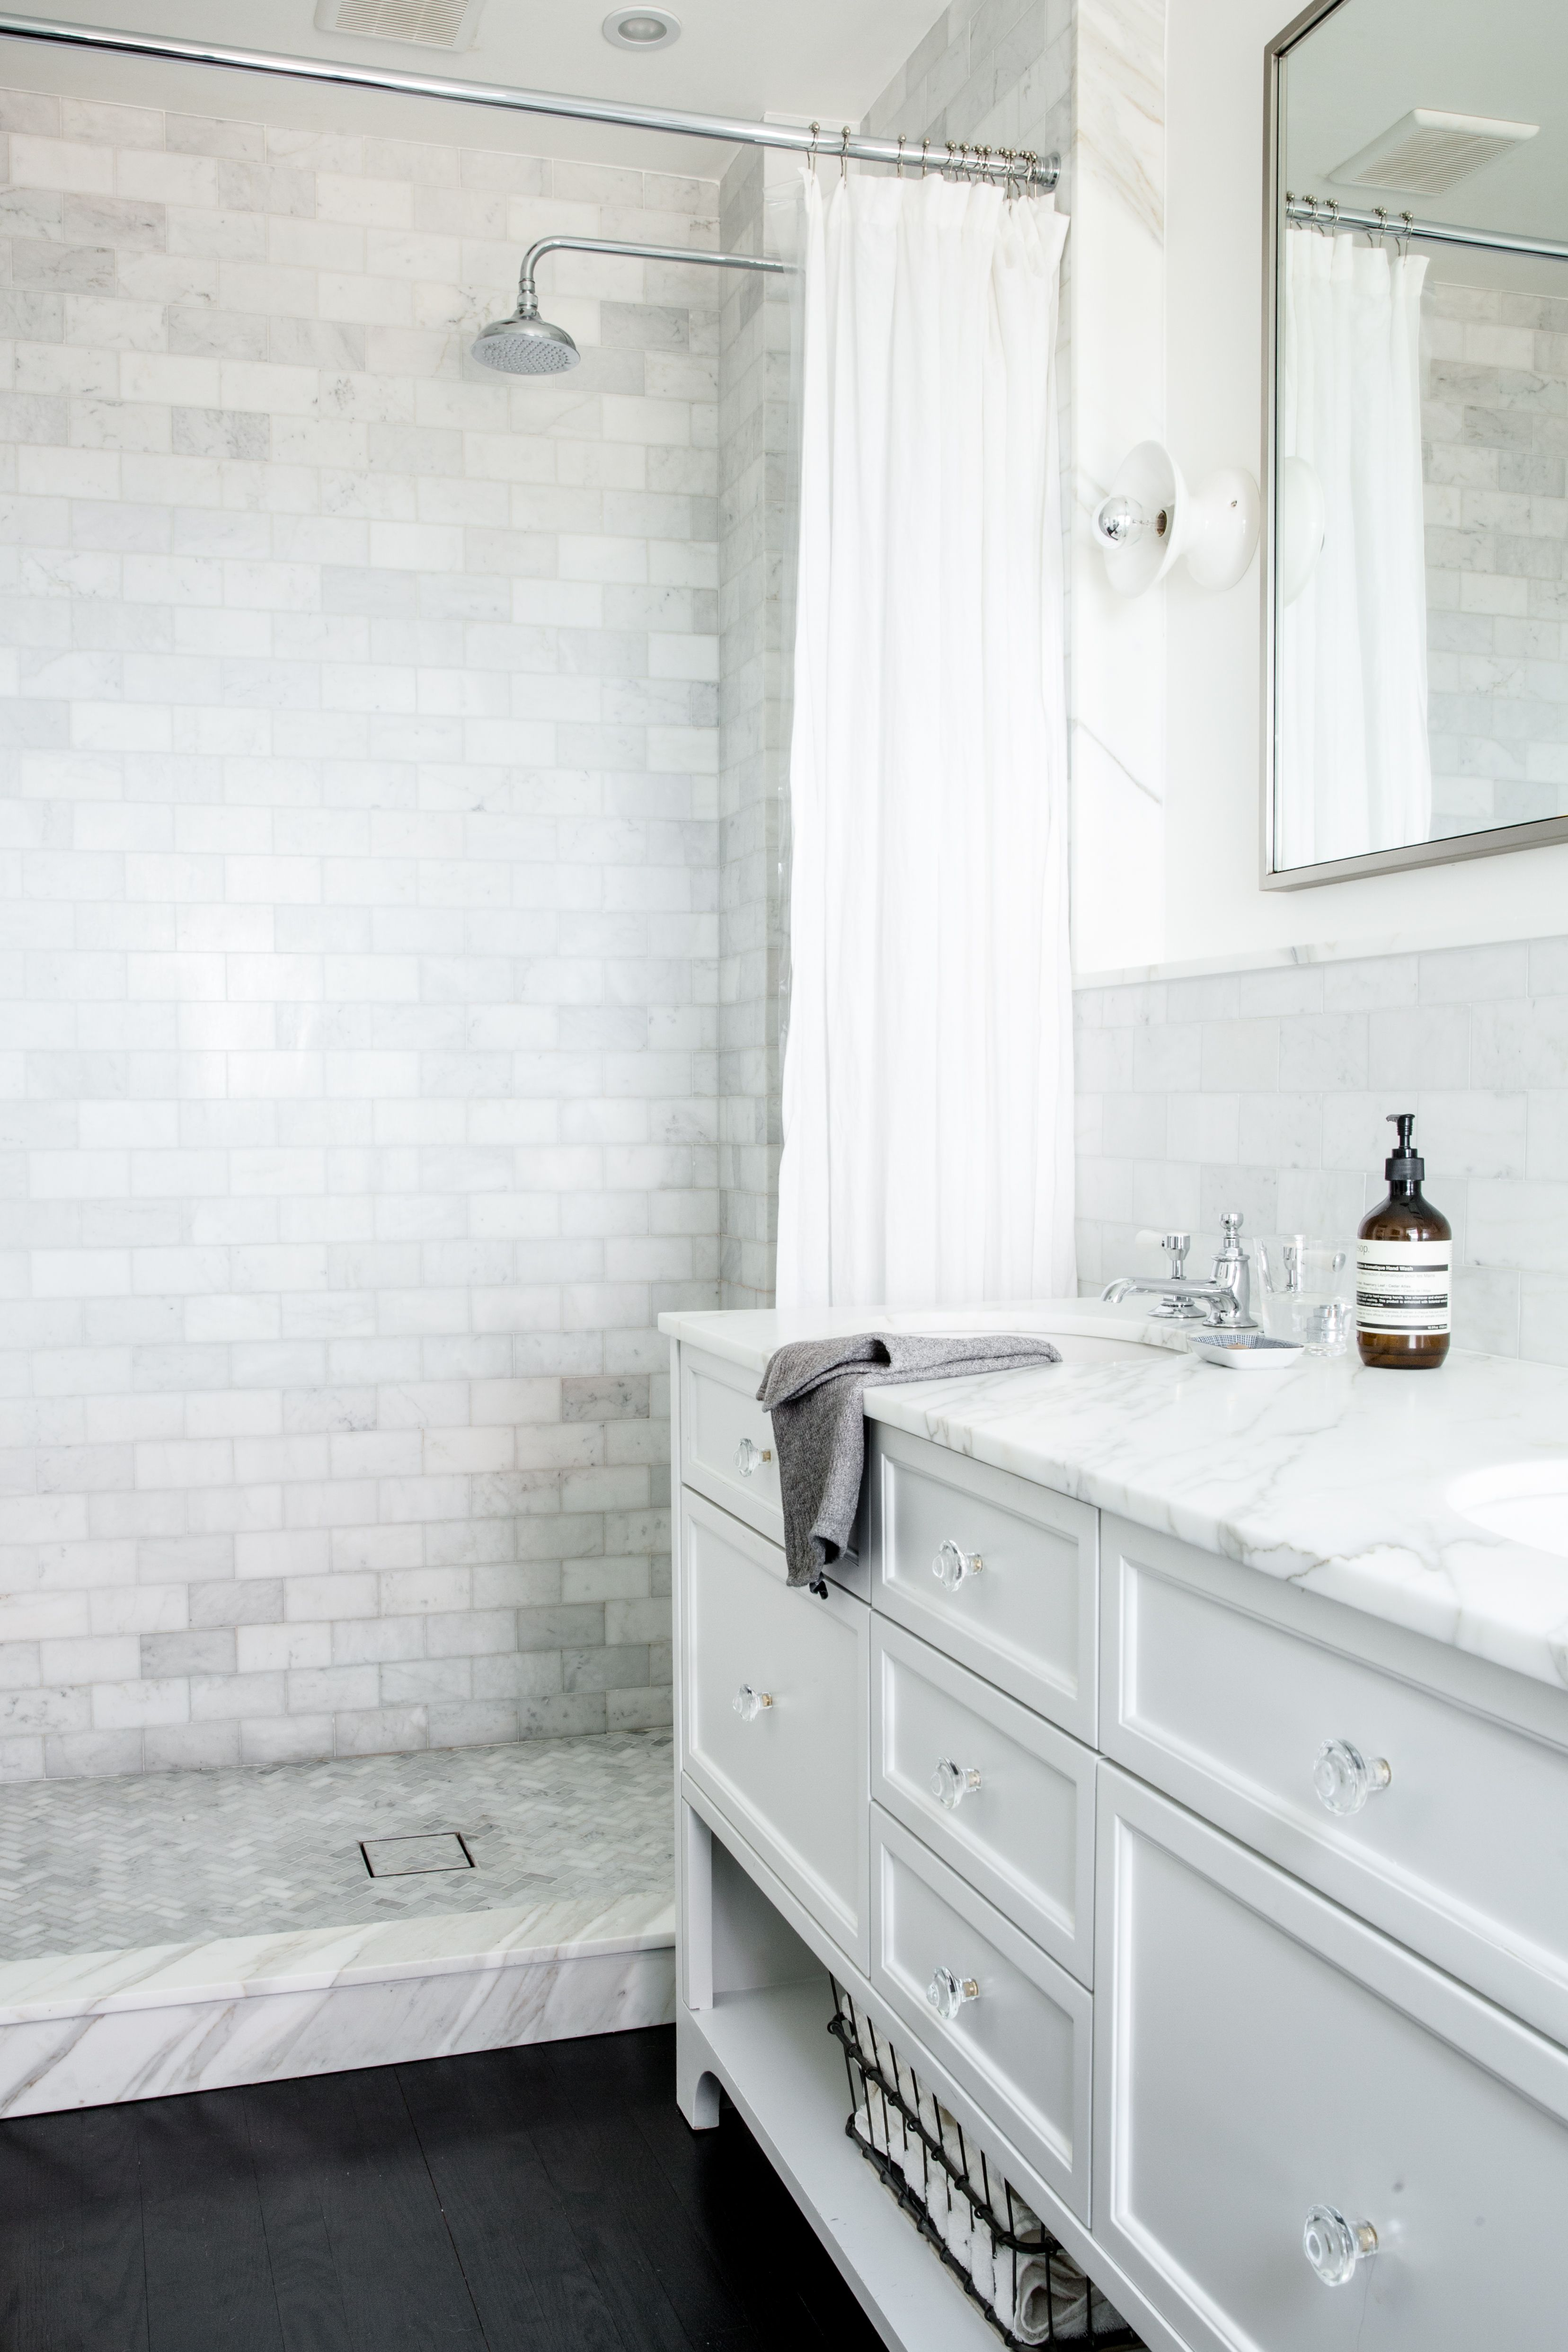 10 Walk-In Shower Ideas That Wow | White cabinets, Marbles and Bath